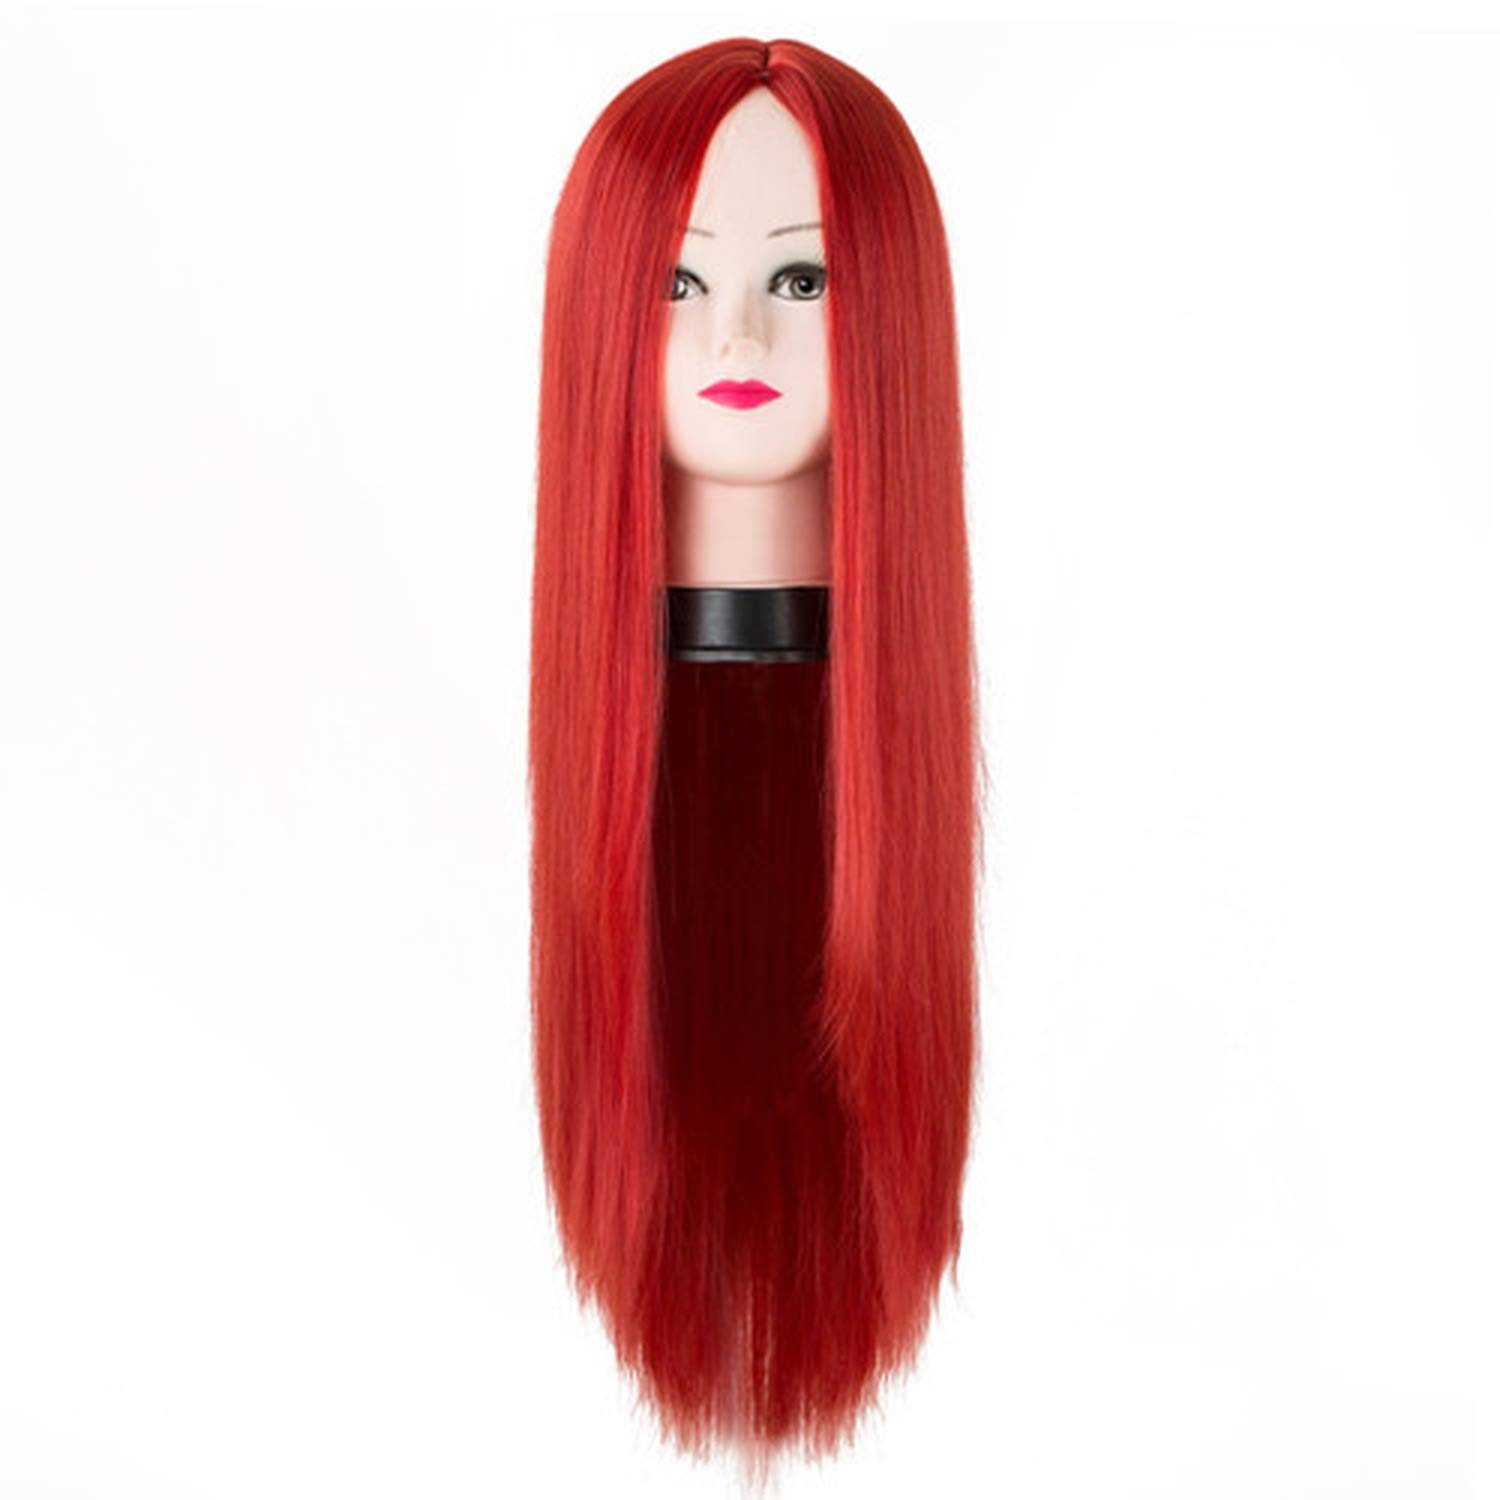 Synthetic Long Hair Straight Blonde Wigs Heat Resistant Cartoon Role Cos-play Costume Women, #1B, 26inches Fairy-Margot